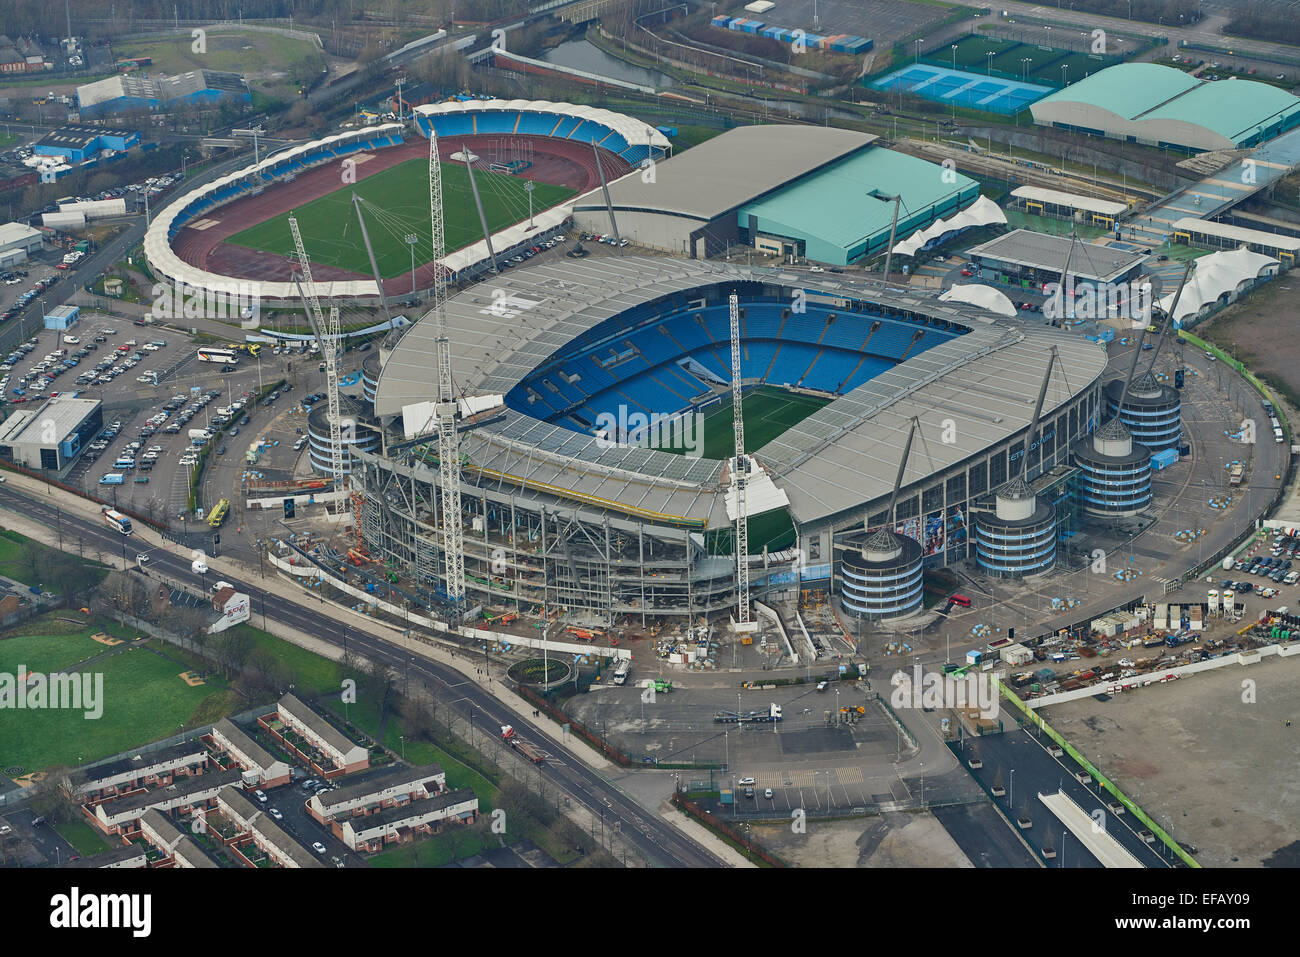 City Of Manchester Stadium: An Aerial View Of The City Of Manchester Stadium, Home Of